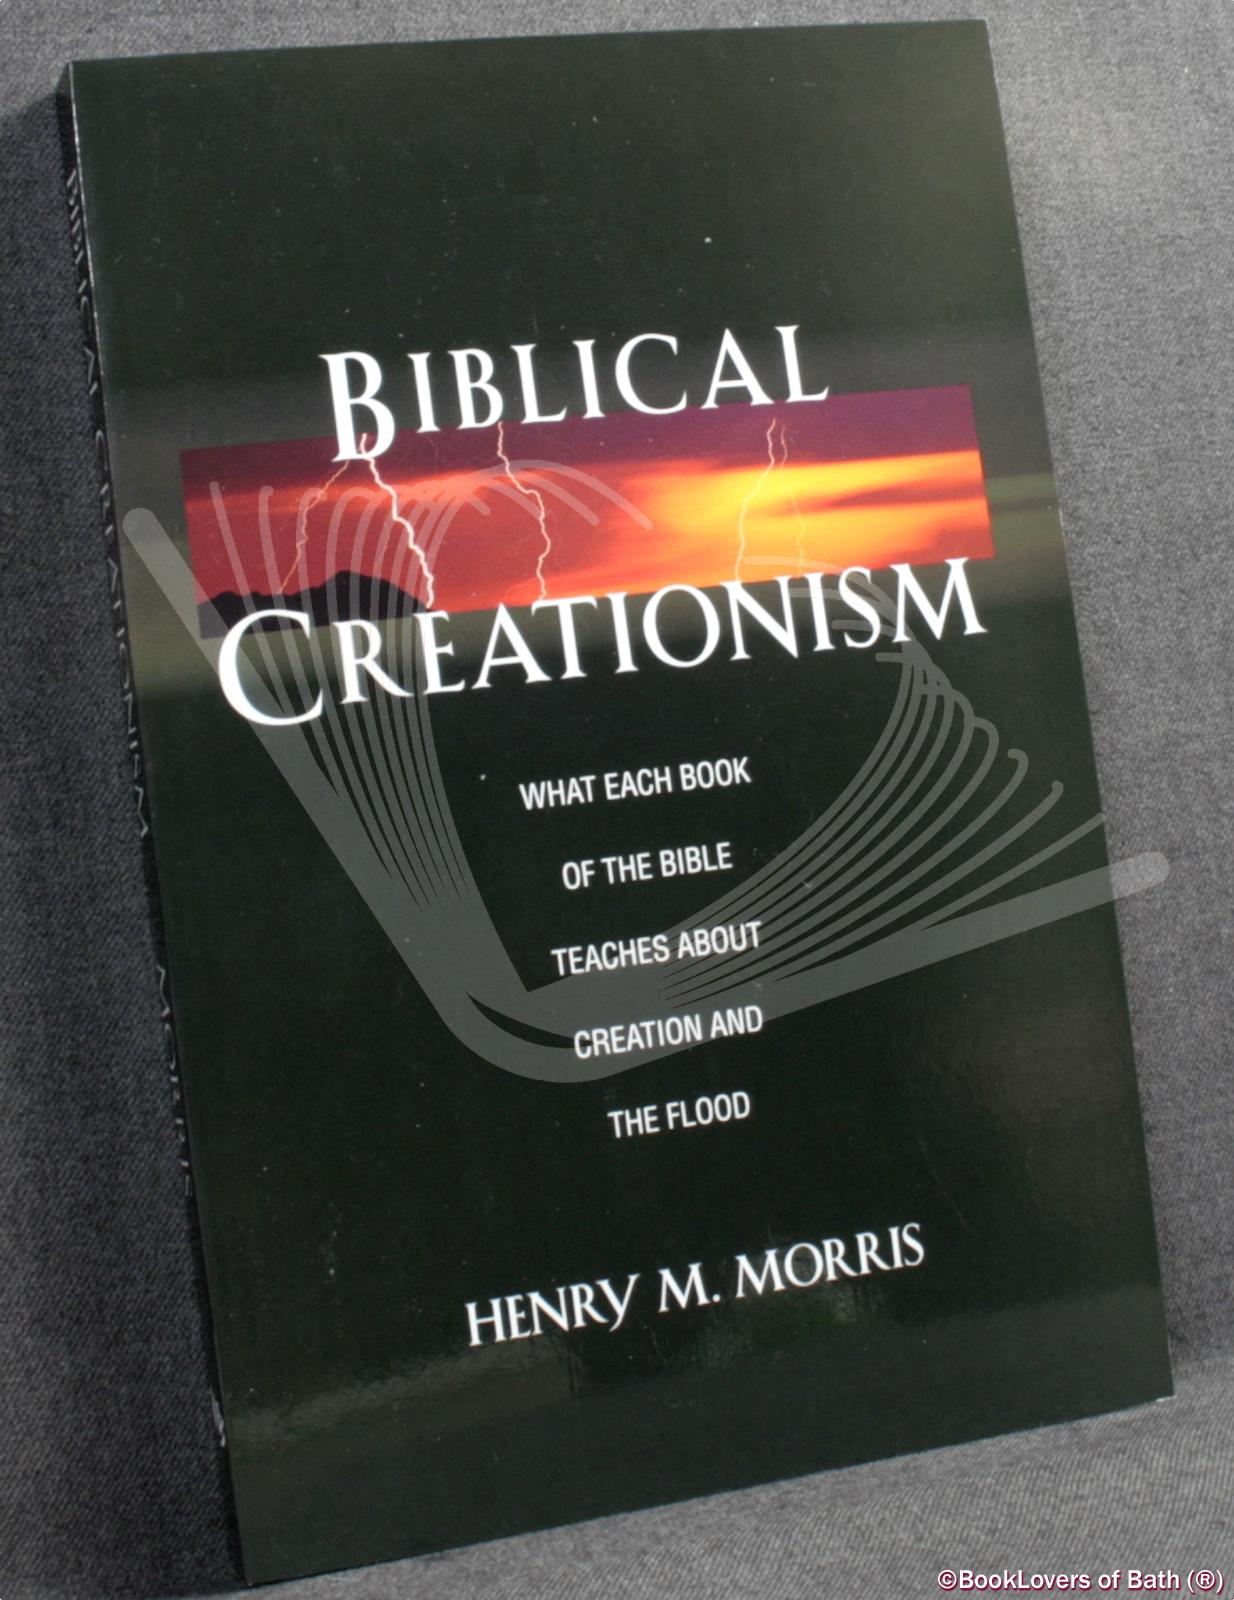 Biblical Creationism: What Each Book of the Bible Teaches About Creation and the Flood - Henry Morris